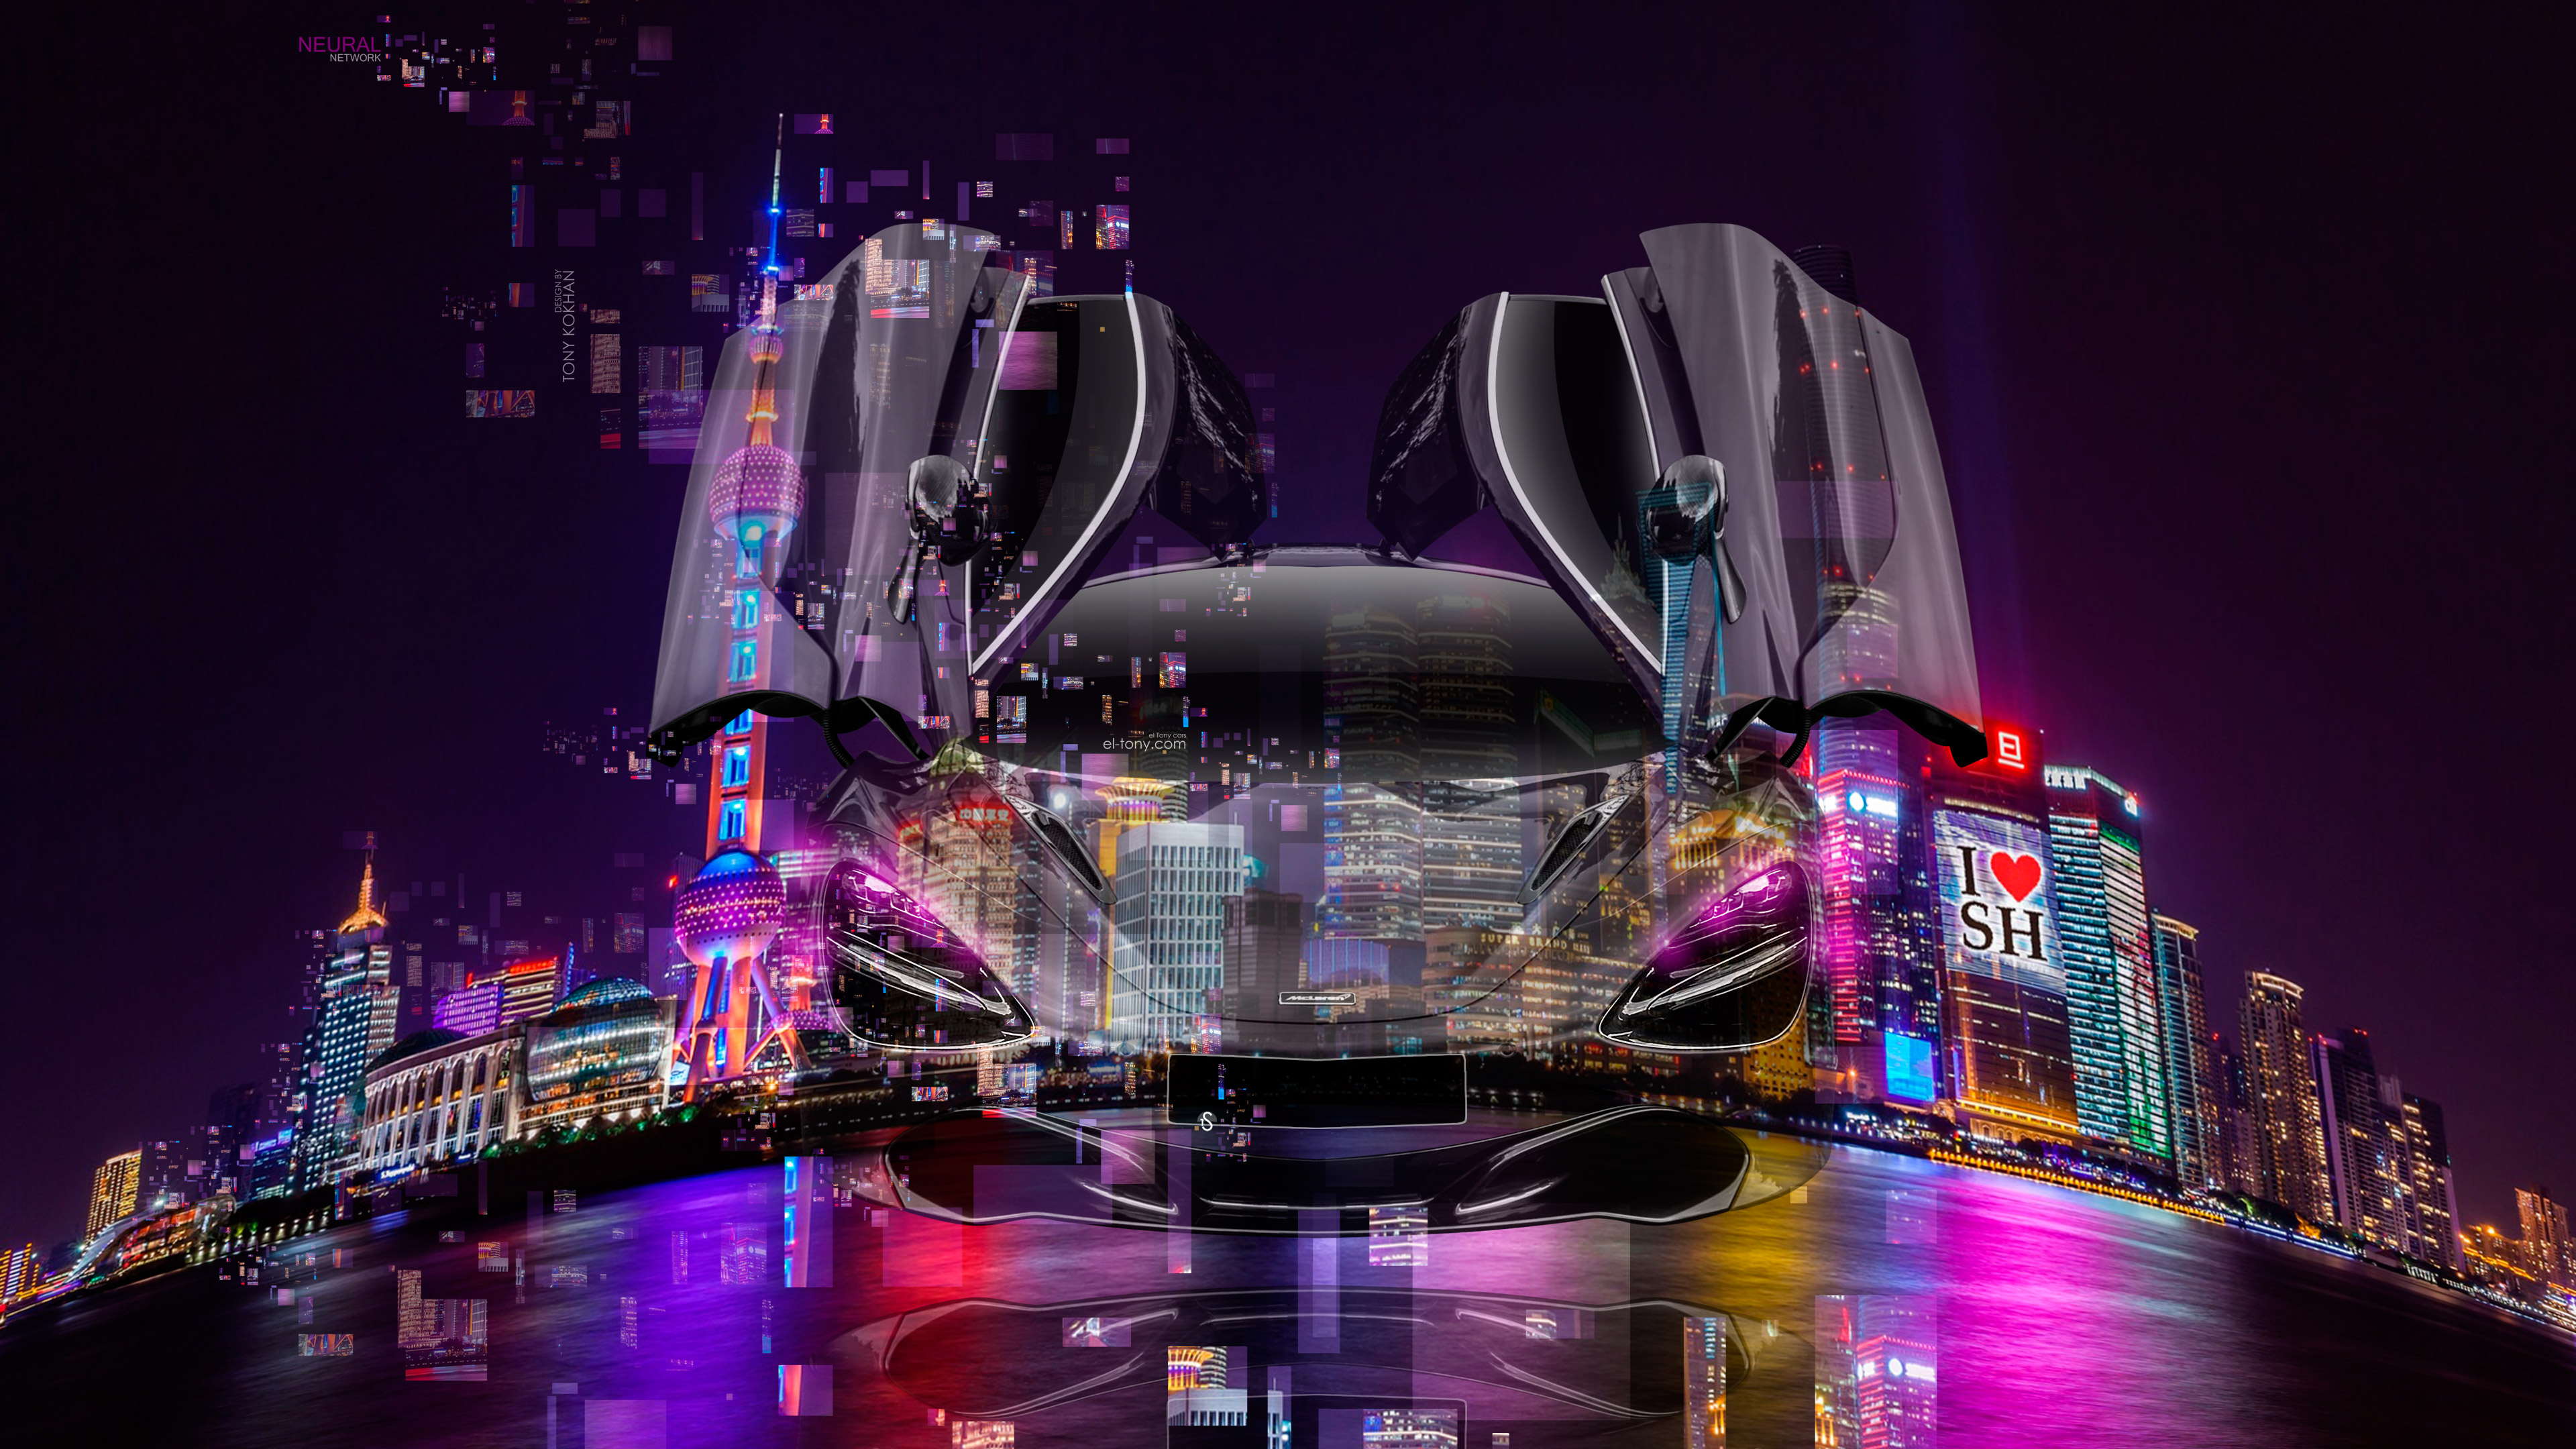 McLaren-720S-FrontUp-Open-Doors-Neural-Network-Super-Crystal-Night-City-Shanghai-China-Fly-Art-Car-2018-Multicolors-4K-Wallpapers-design-by-Tony-Kokhan-www.el-tony.com-image